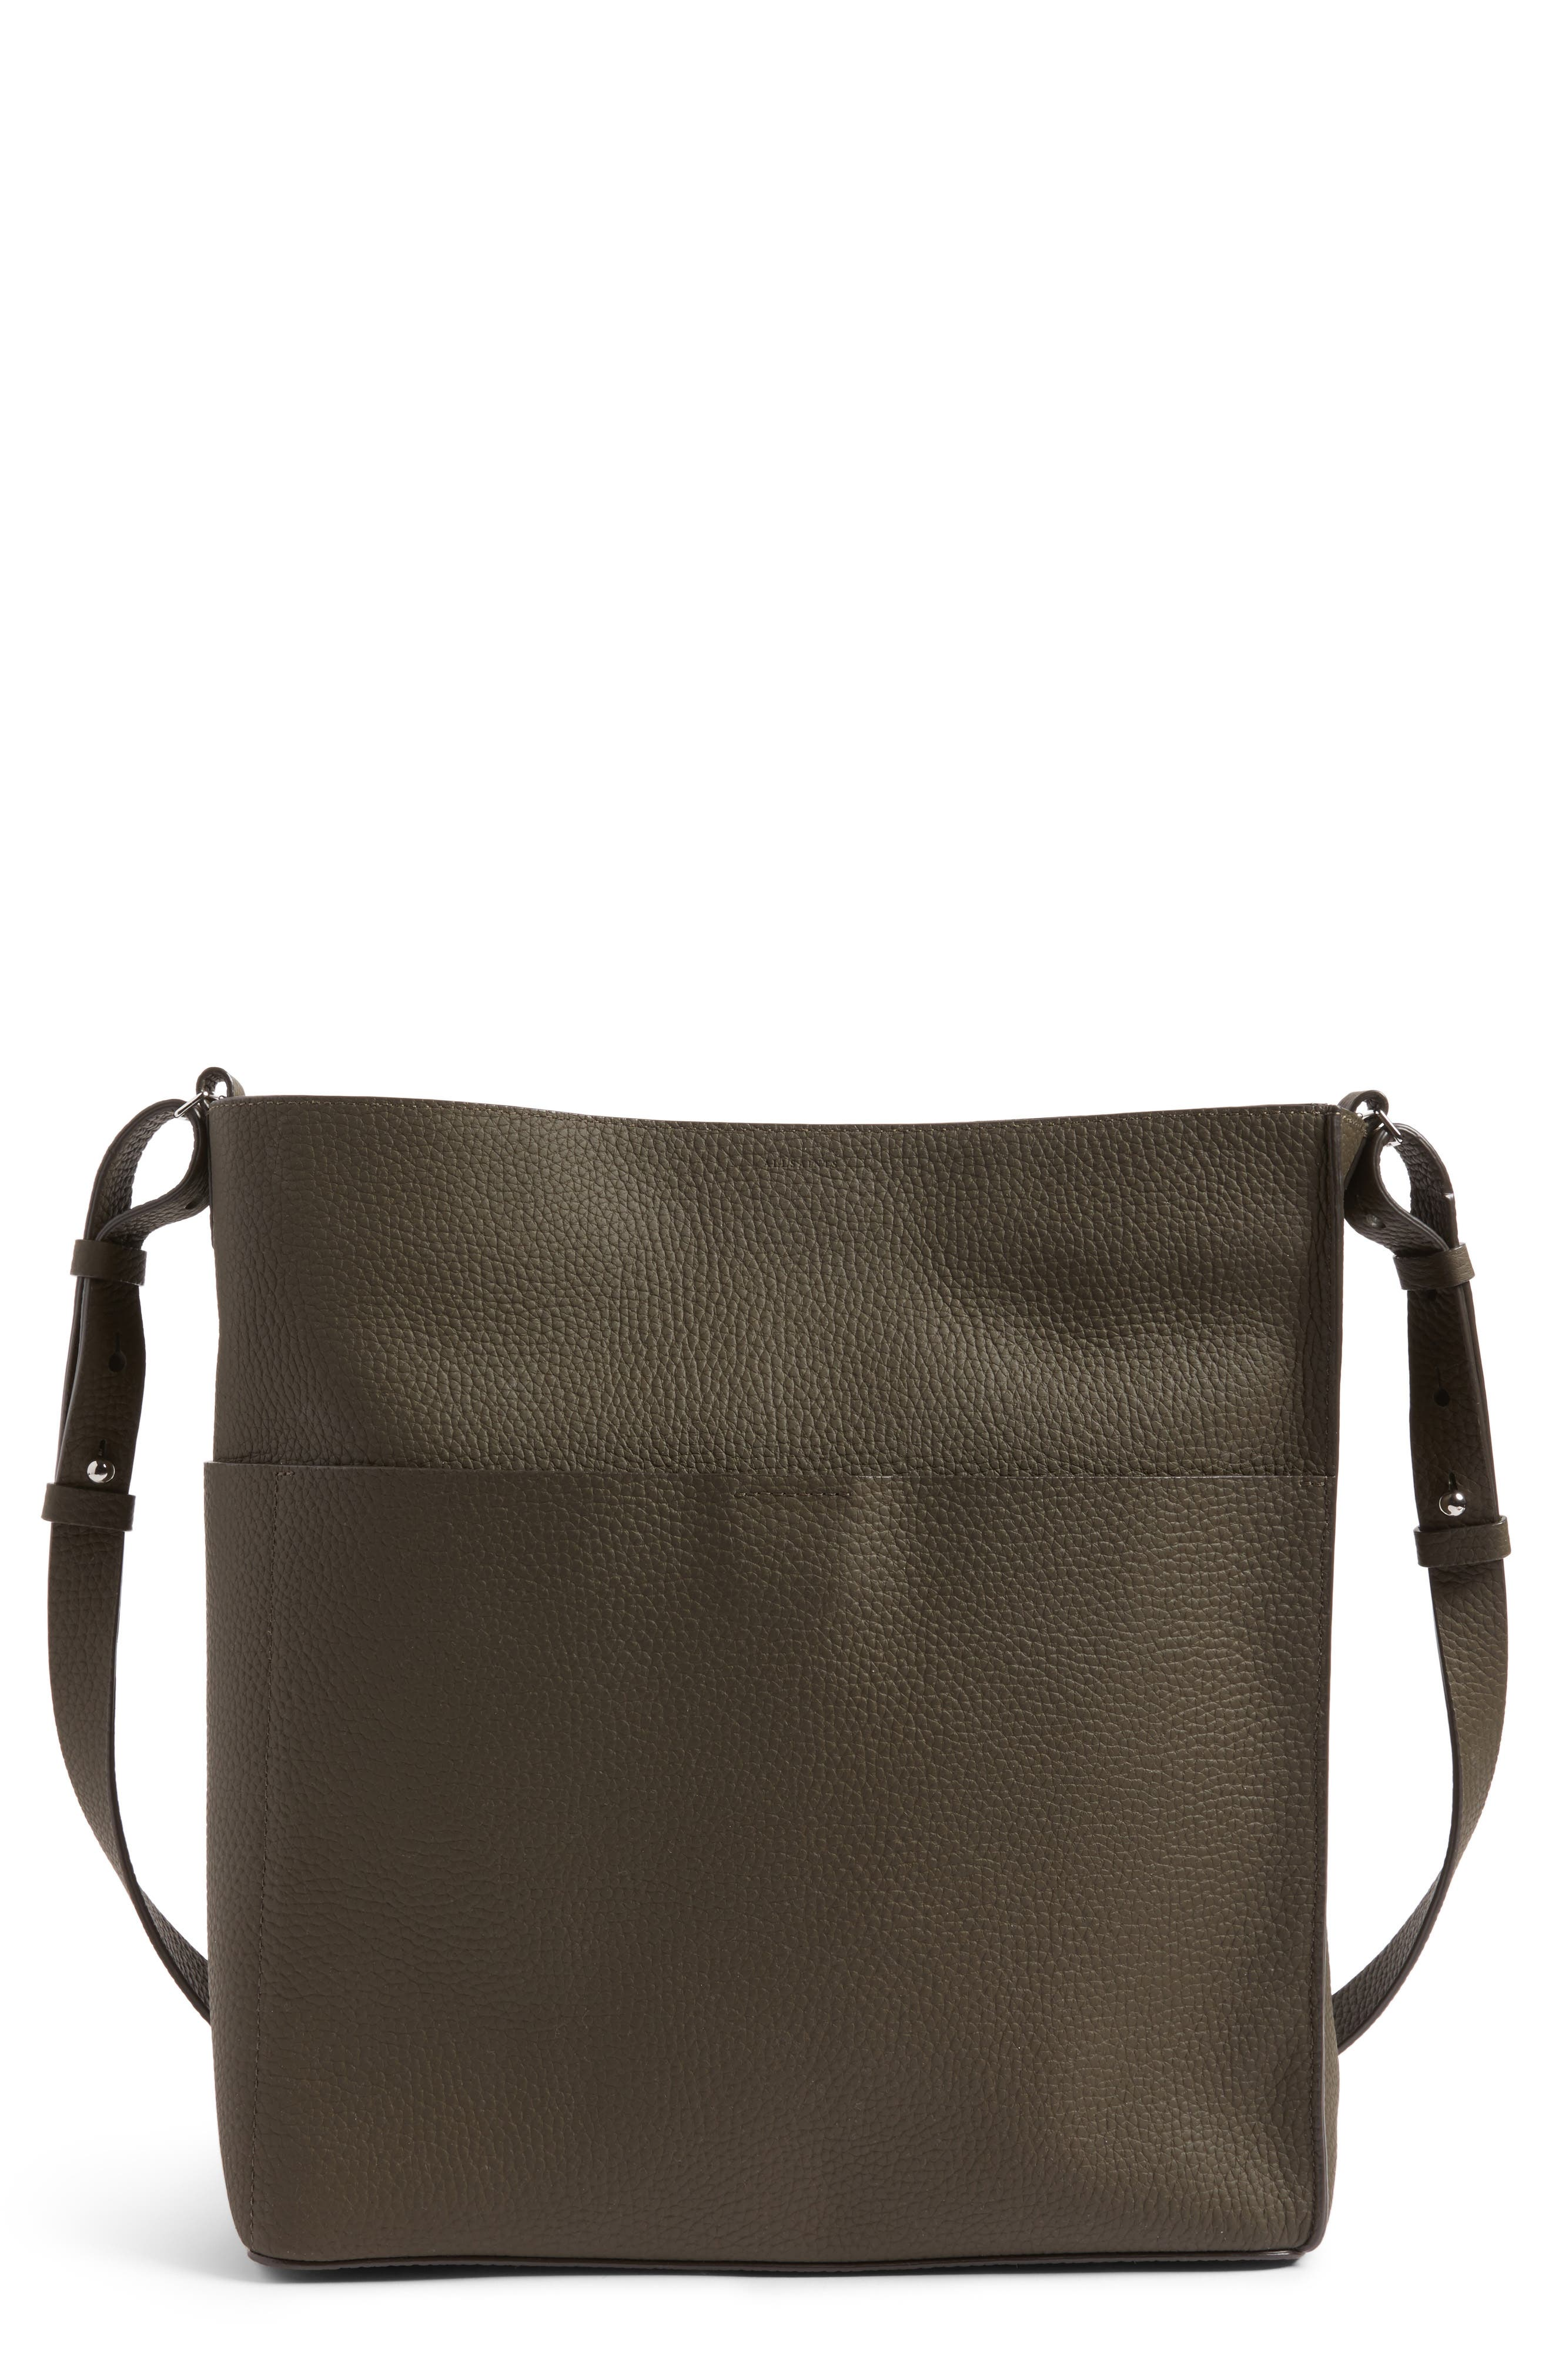 Main Image - ALLSAINTS Mast Crossbody Tote (Nordstrom Exclusive)